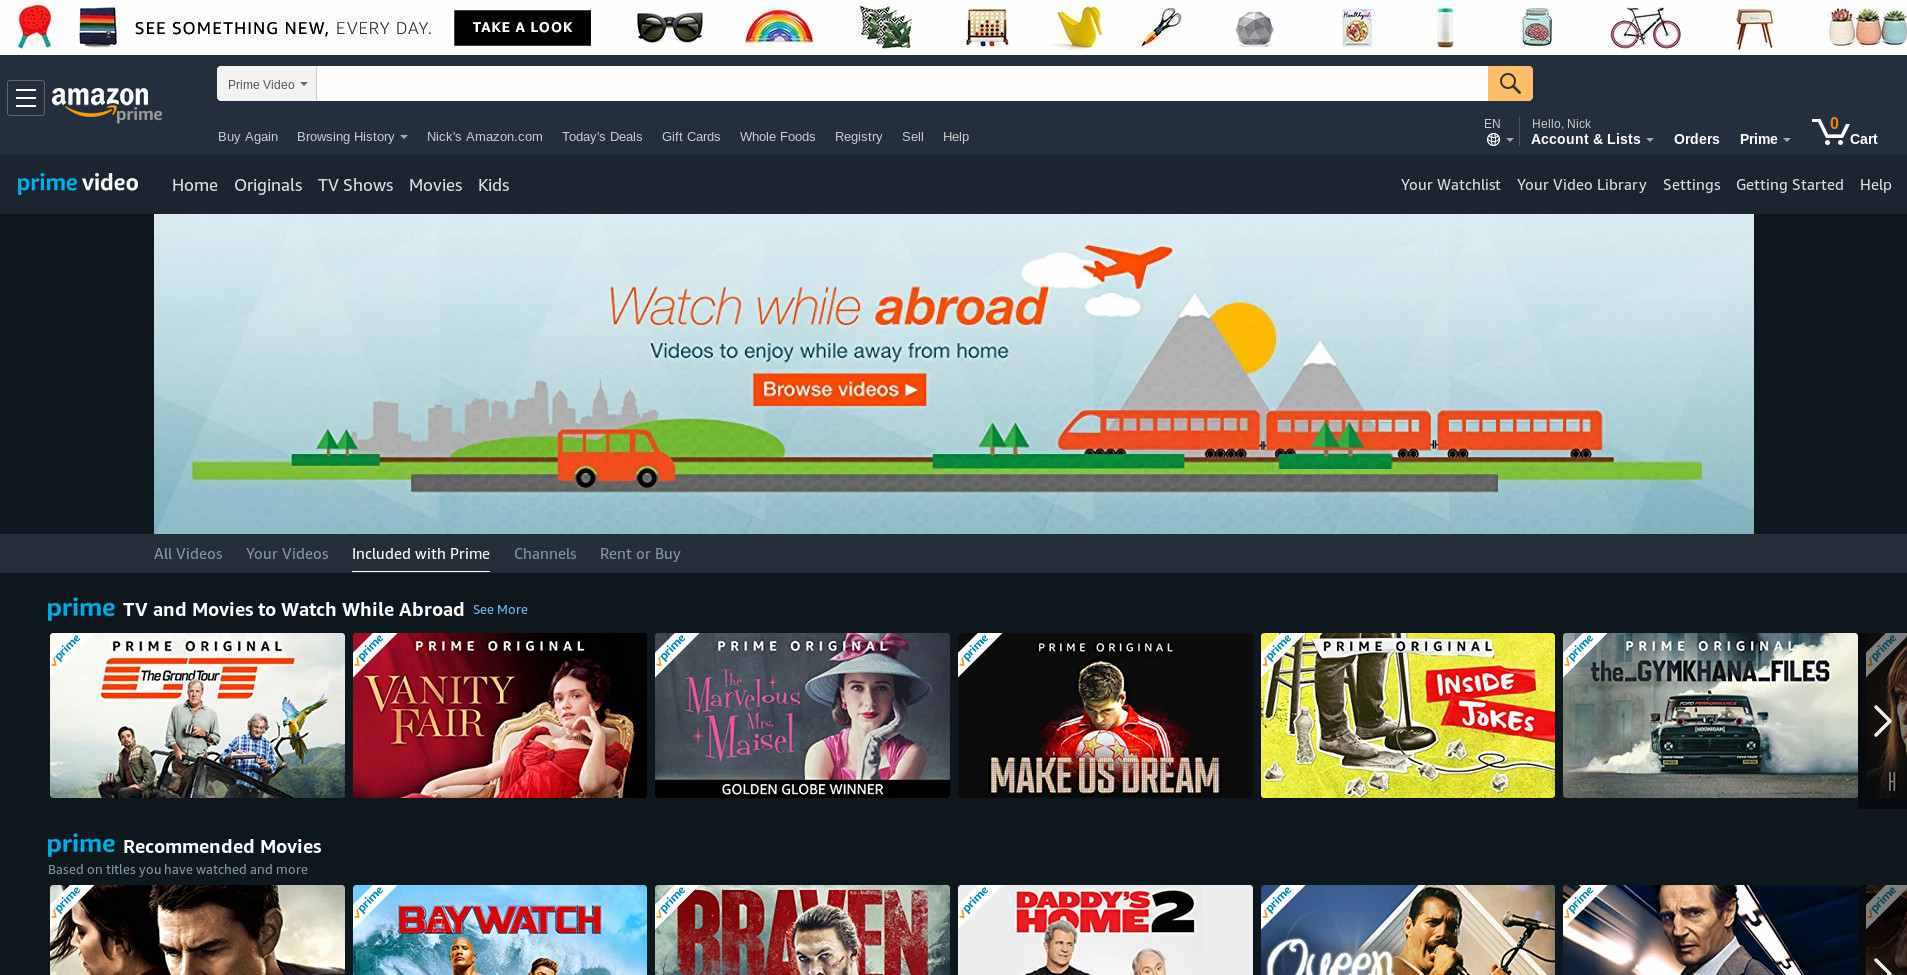 Amazon Channels: How to Add and Use Premium Channels Like HBO With